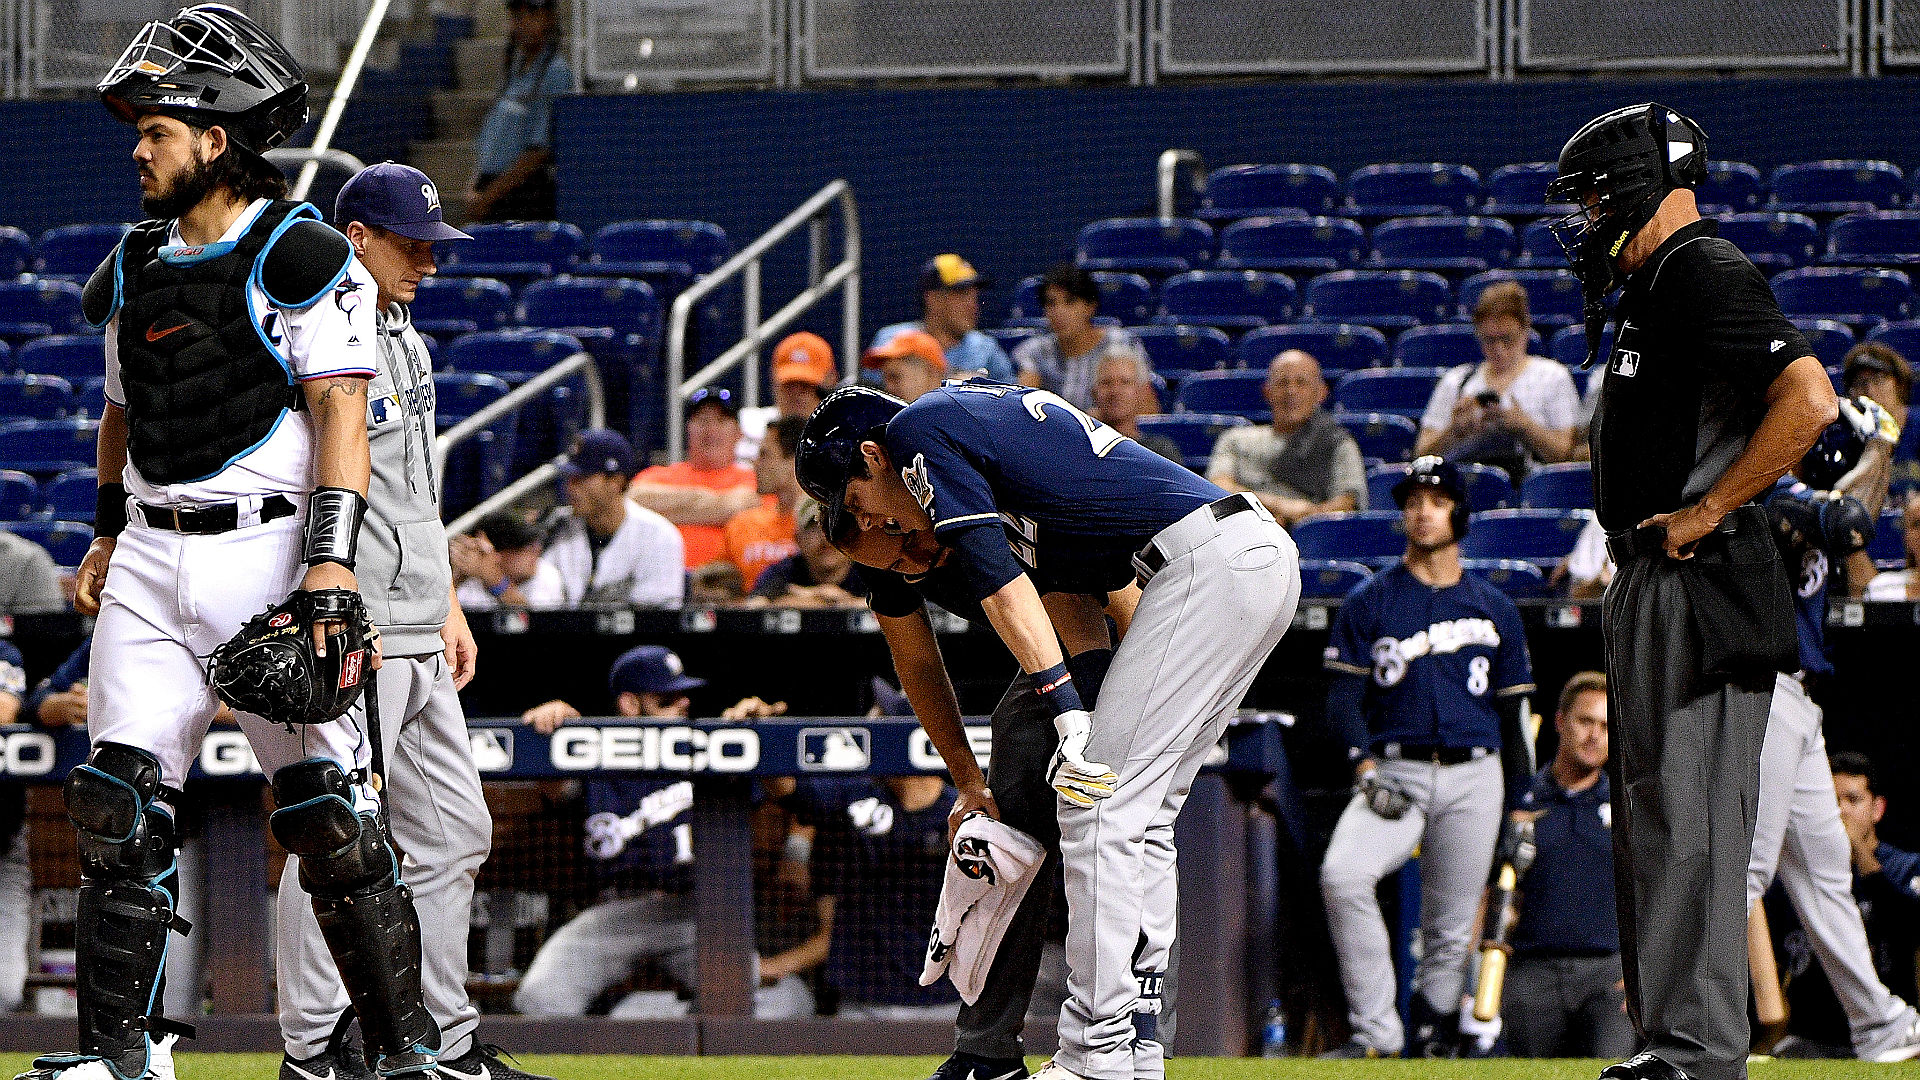 Yelich suffered the injury after lining a ball off his leg in the first inning Tuesday against the Marlins.